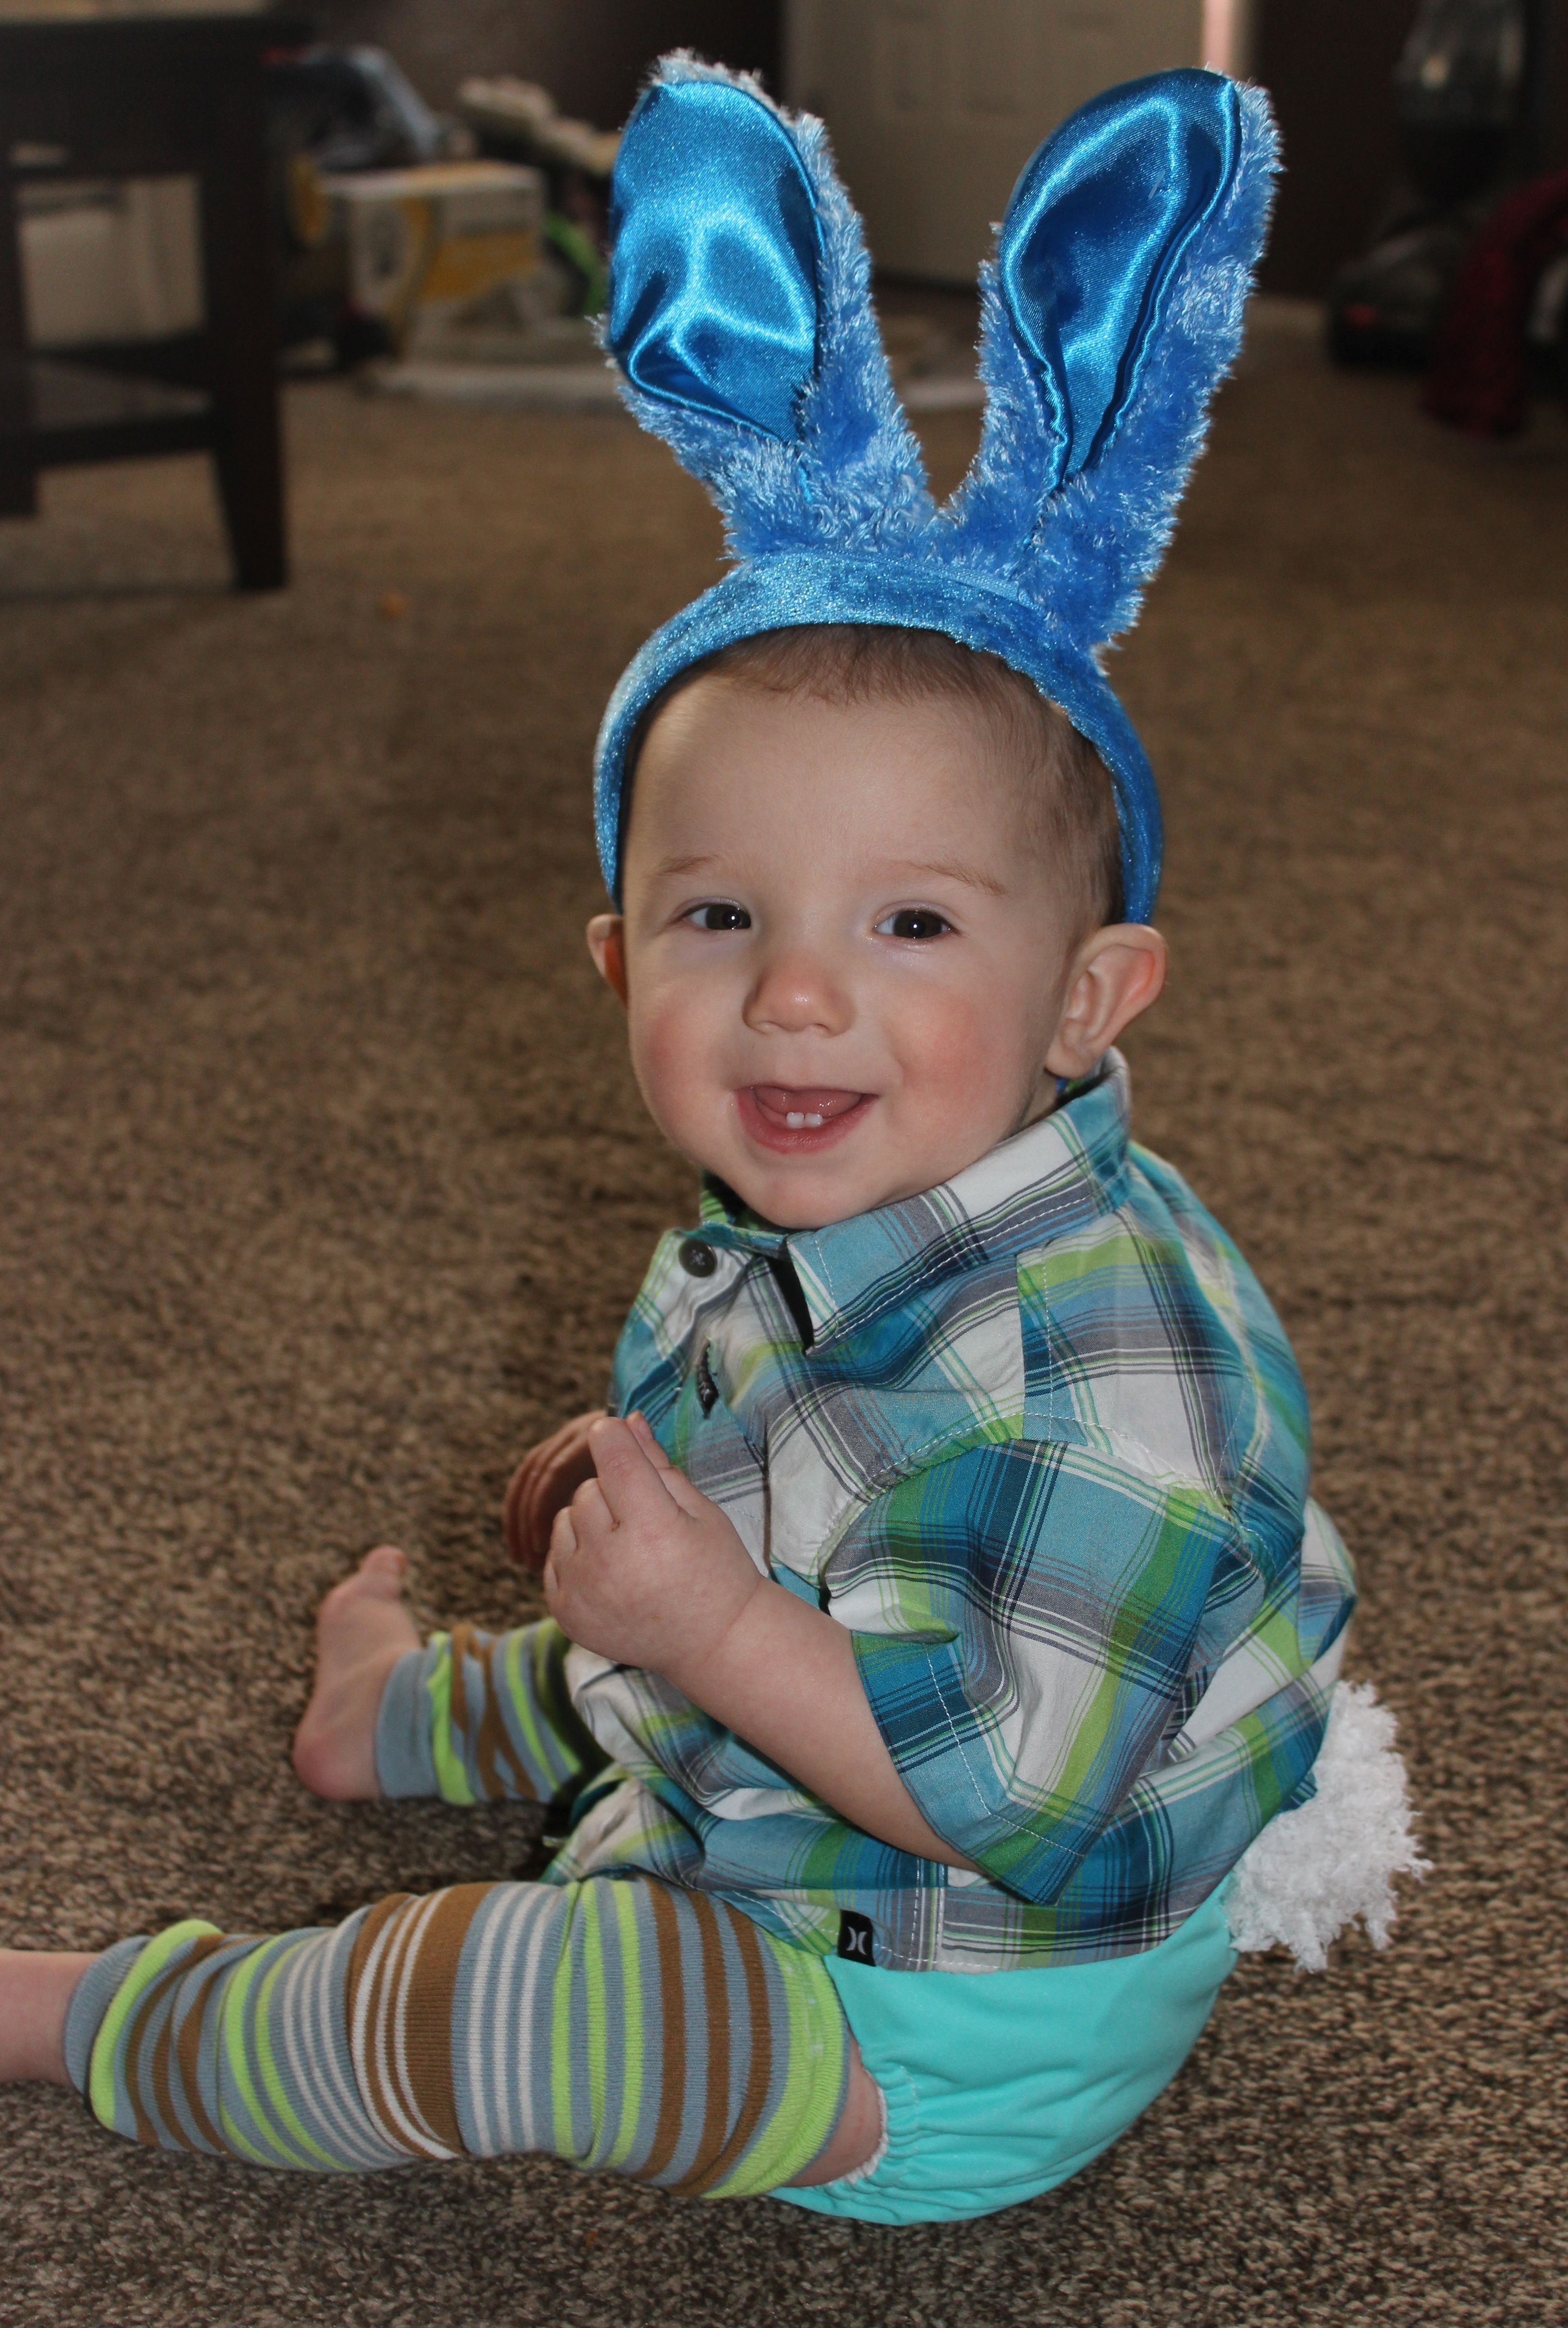 @DiaperShops  #clothdiaperlove My little Easter bunny in his favorite diapers. We love cloth diapers because they are so cute and No more red bums means more of my adorable little smiles :)